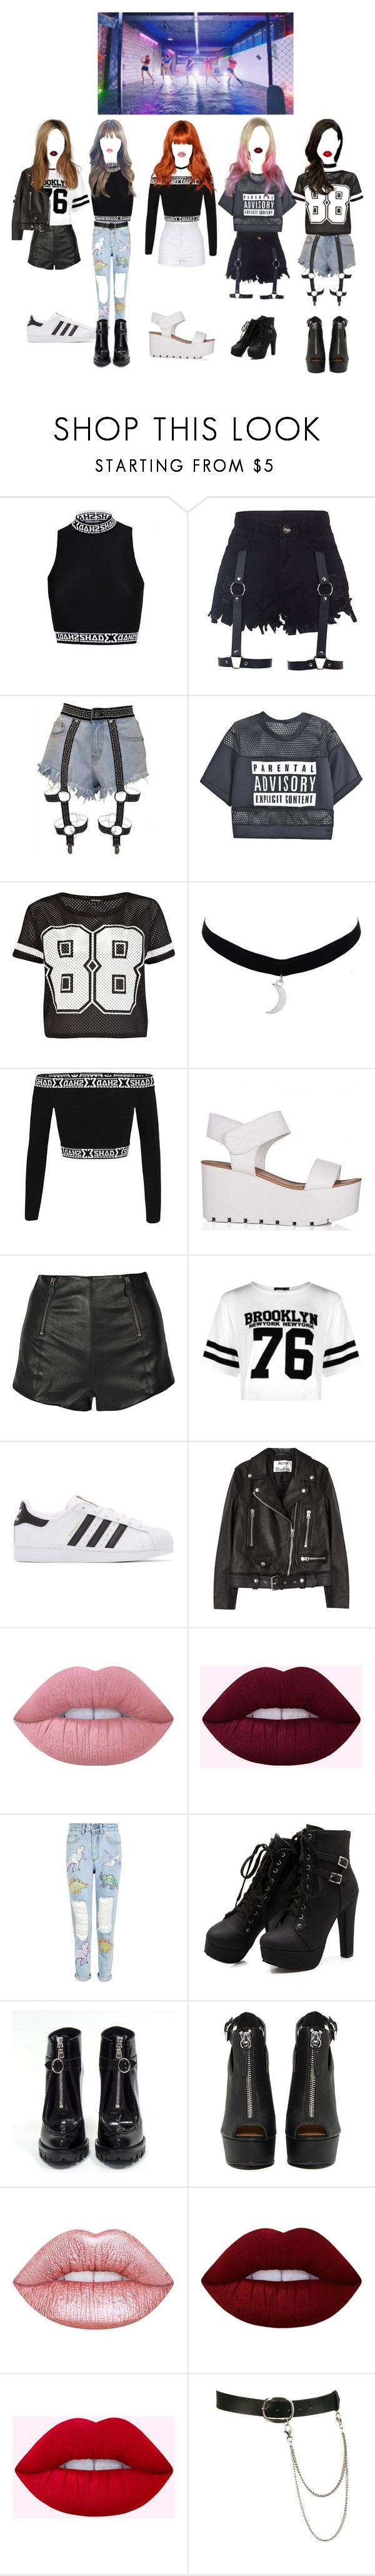 """Touch -  TOXIC GIRLS   DANCE"" by official-toxicgrils ❤ liked on Polyvore featuring River Island, McQ by Alexander McQueen, Boohoo, adidas Originals, Acne Studios, Lime Crime, Topshop, Prada, Shoe Cult and Wet Seal"